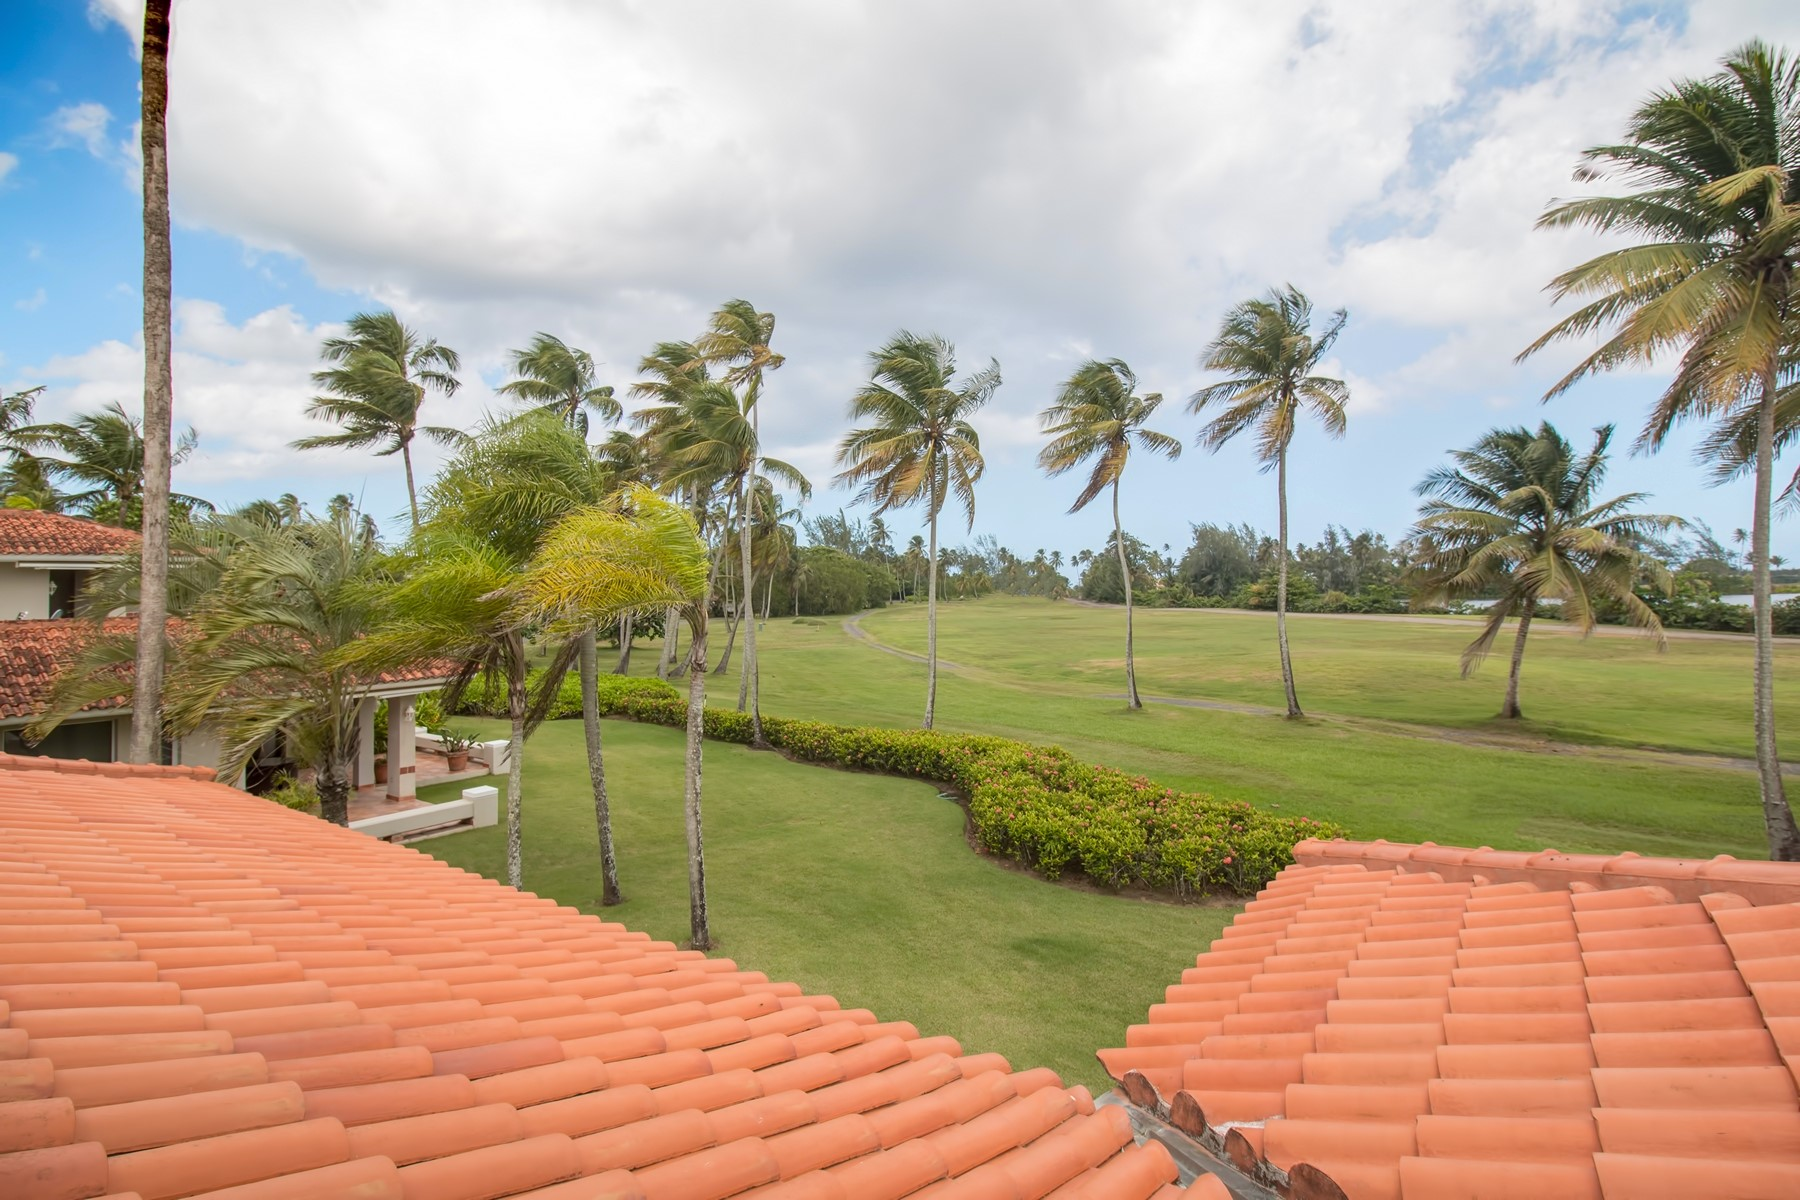 Additional photo for property listing at Mediterranean Villa at The Greens 3 Green Villas Drive Dorado, Puerto Rico 00646 Puerto Rico